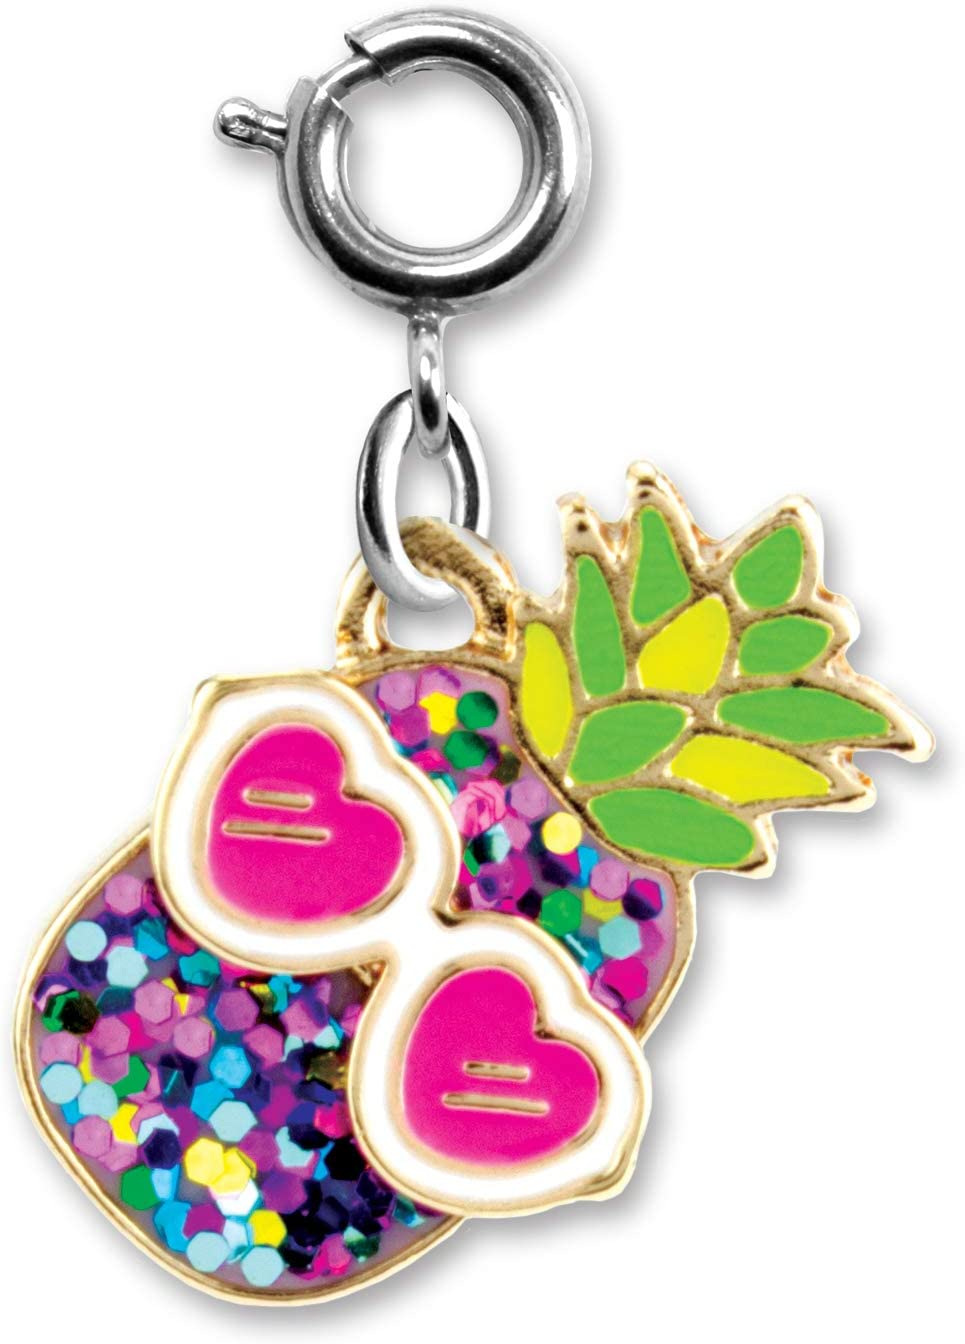 CHARM IT! Charms for Bracelets and Necklaces - Glitter Pineapple Charm